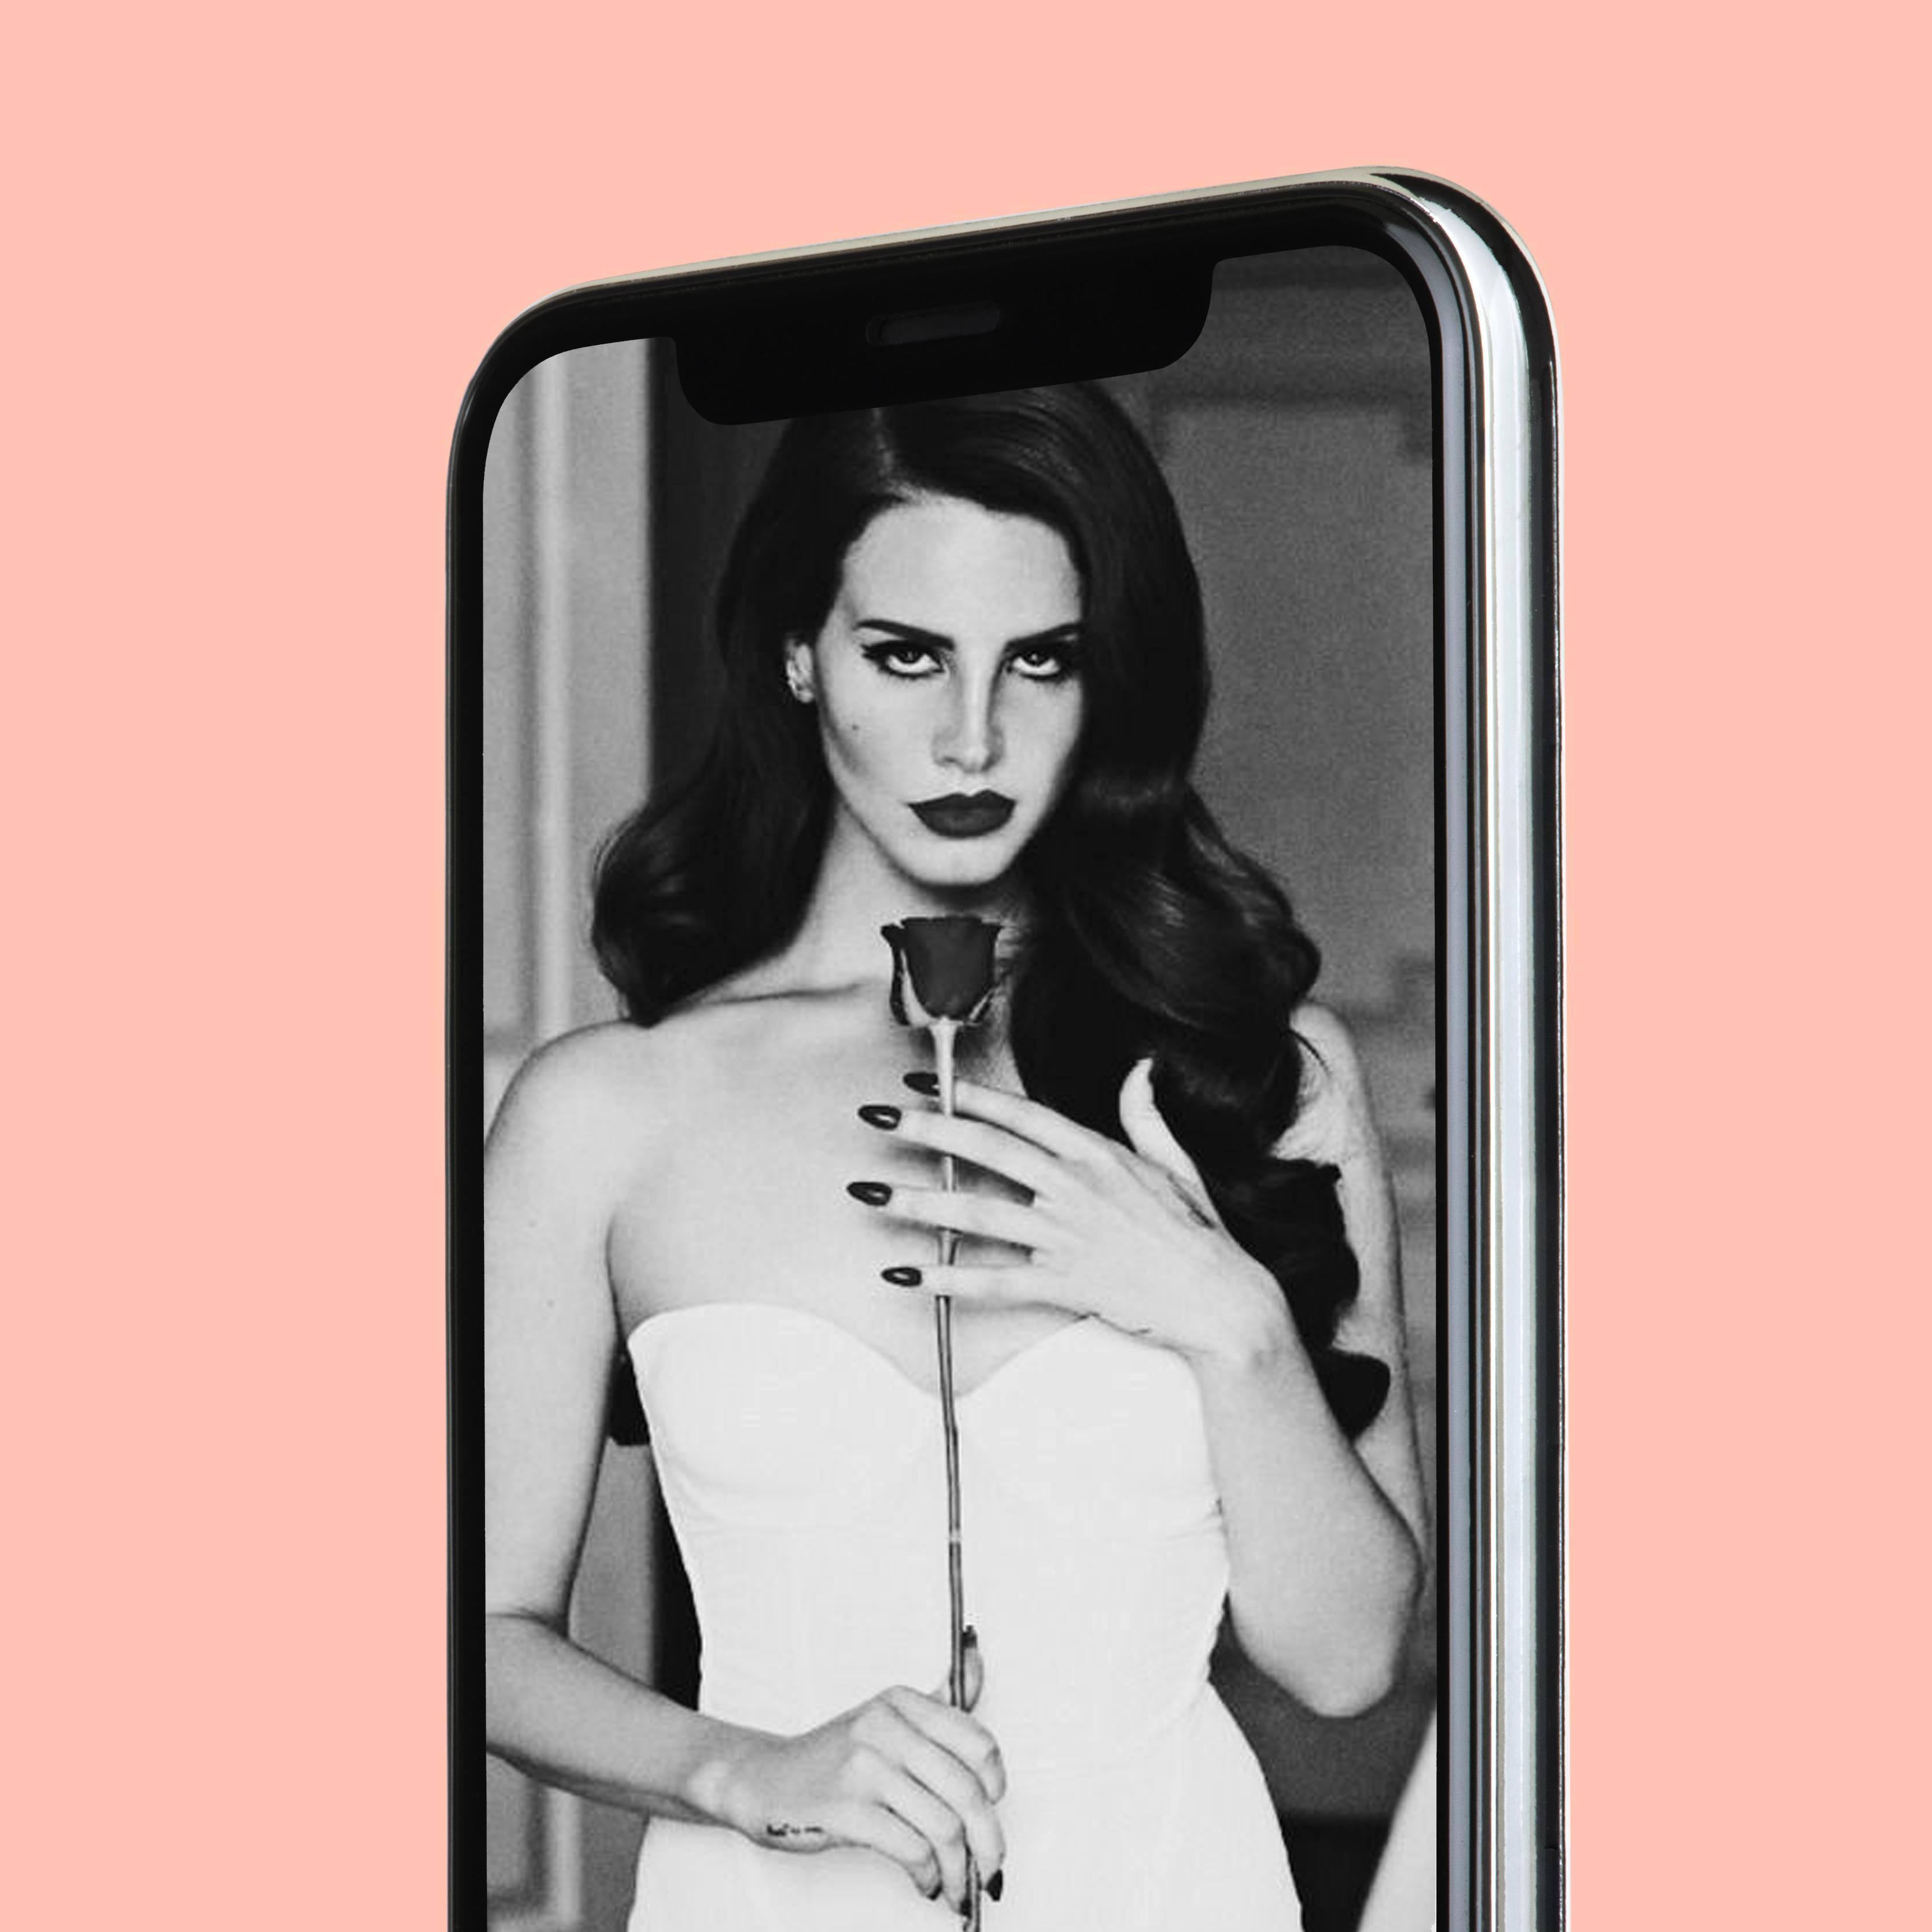 Lana Del Rey Wallpaper 2019 Hd For Android Apk Download